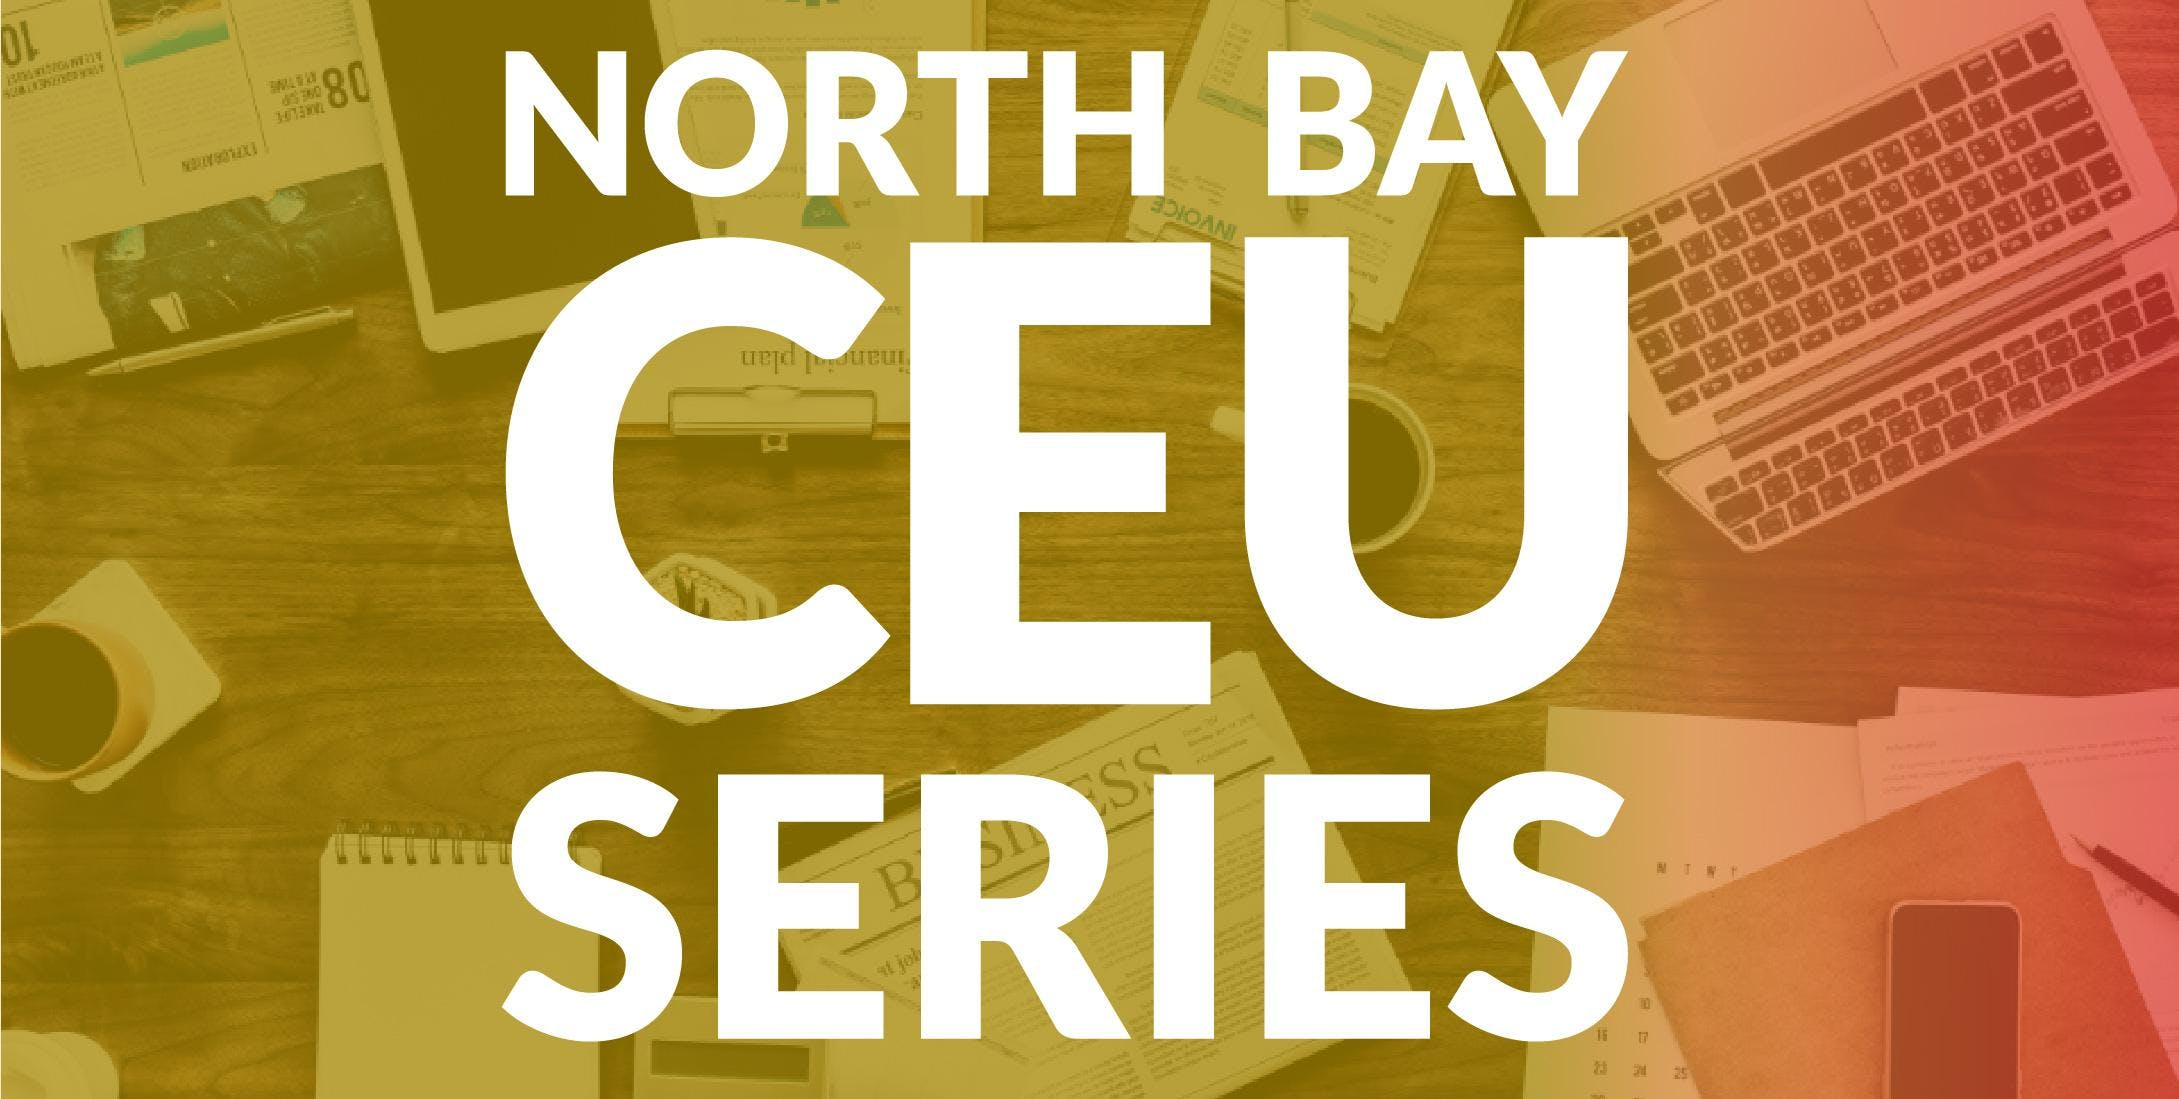 North Bay CEU Series | Information Overload